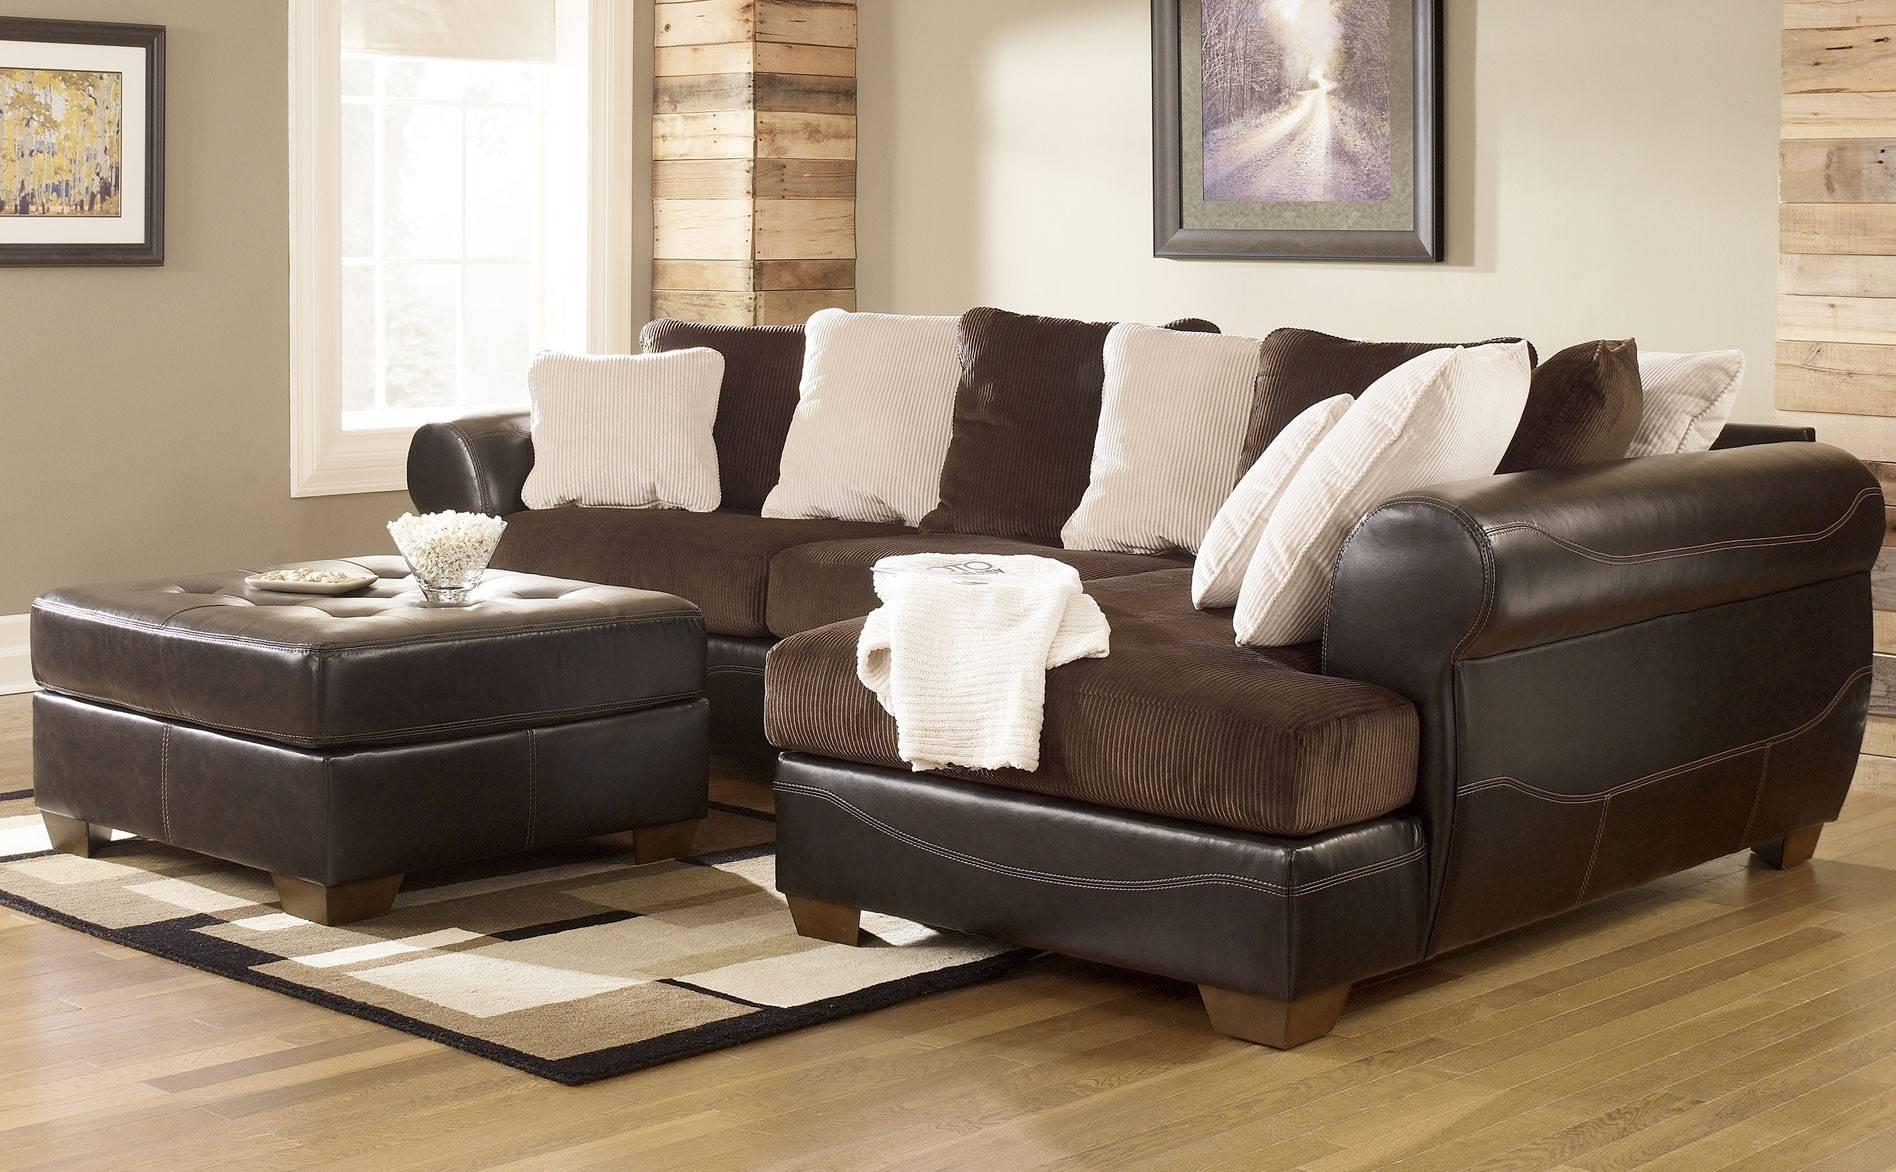 Decorating: Black Leather Ashley Furniture Sectional Sofa With intended for Ashley Furniture Corduroy Sectional Sofas (Image 9 of 15)